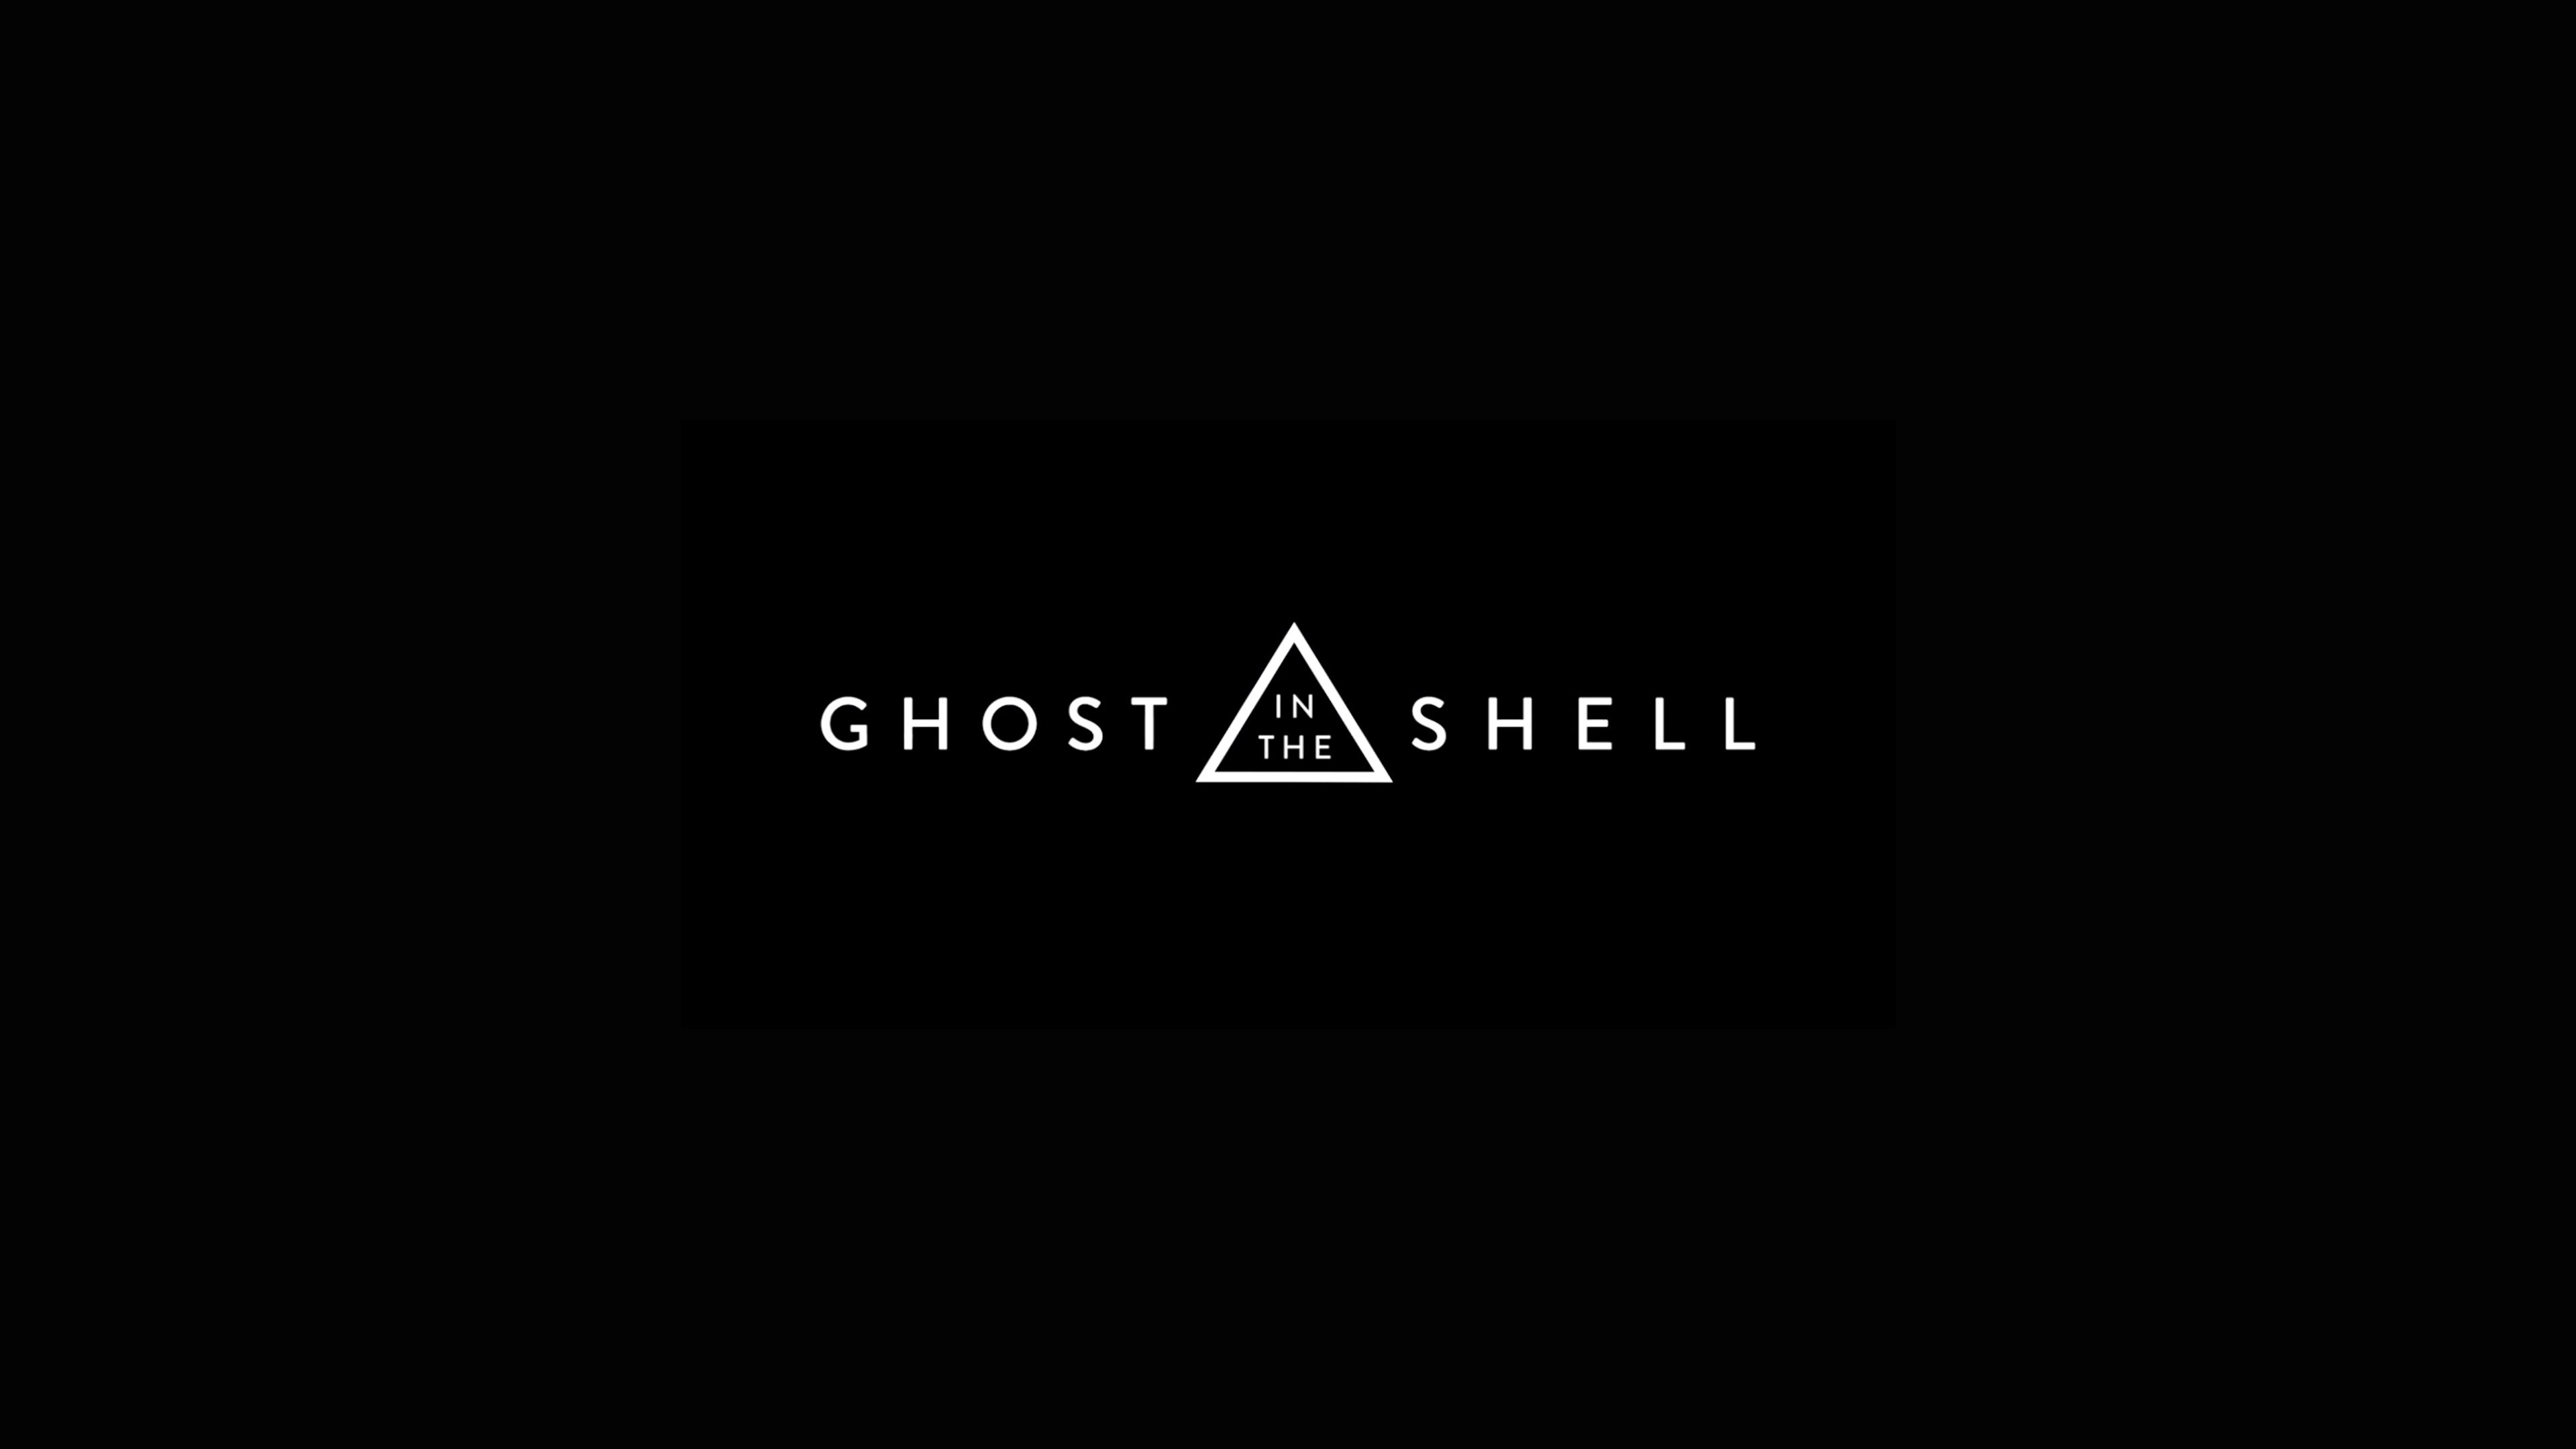 Ghost In The Shell Wallpaper ·① Download Free Amazing